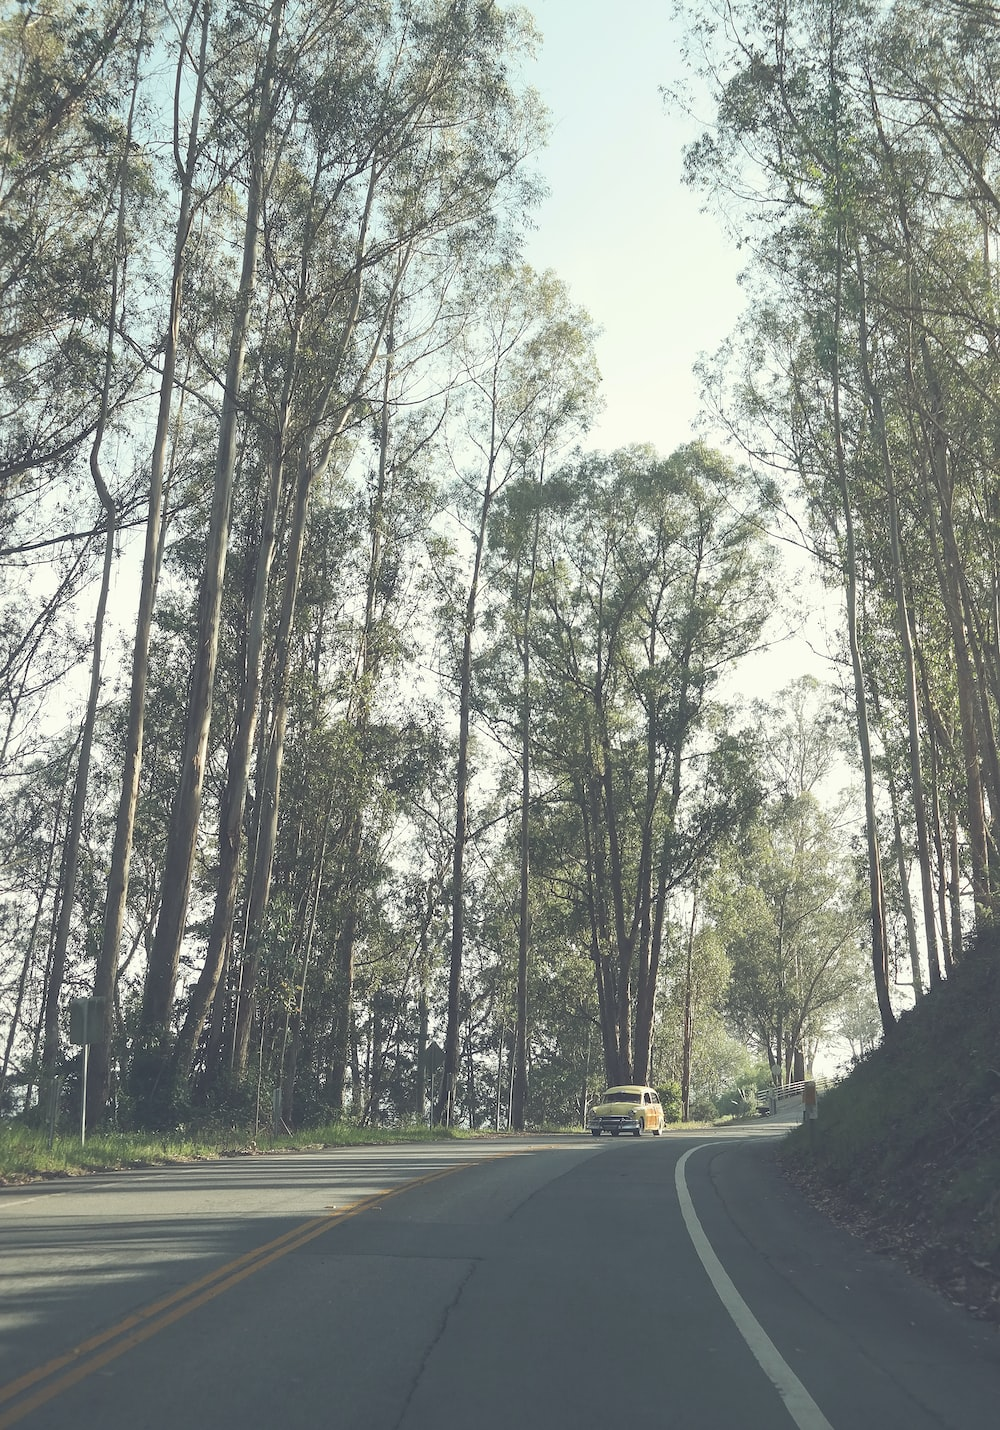 yellow car surrounded by trees during daytime